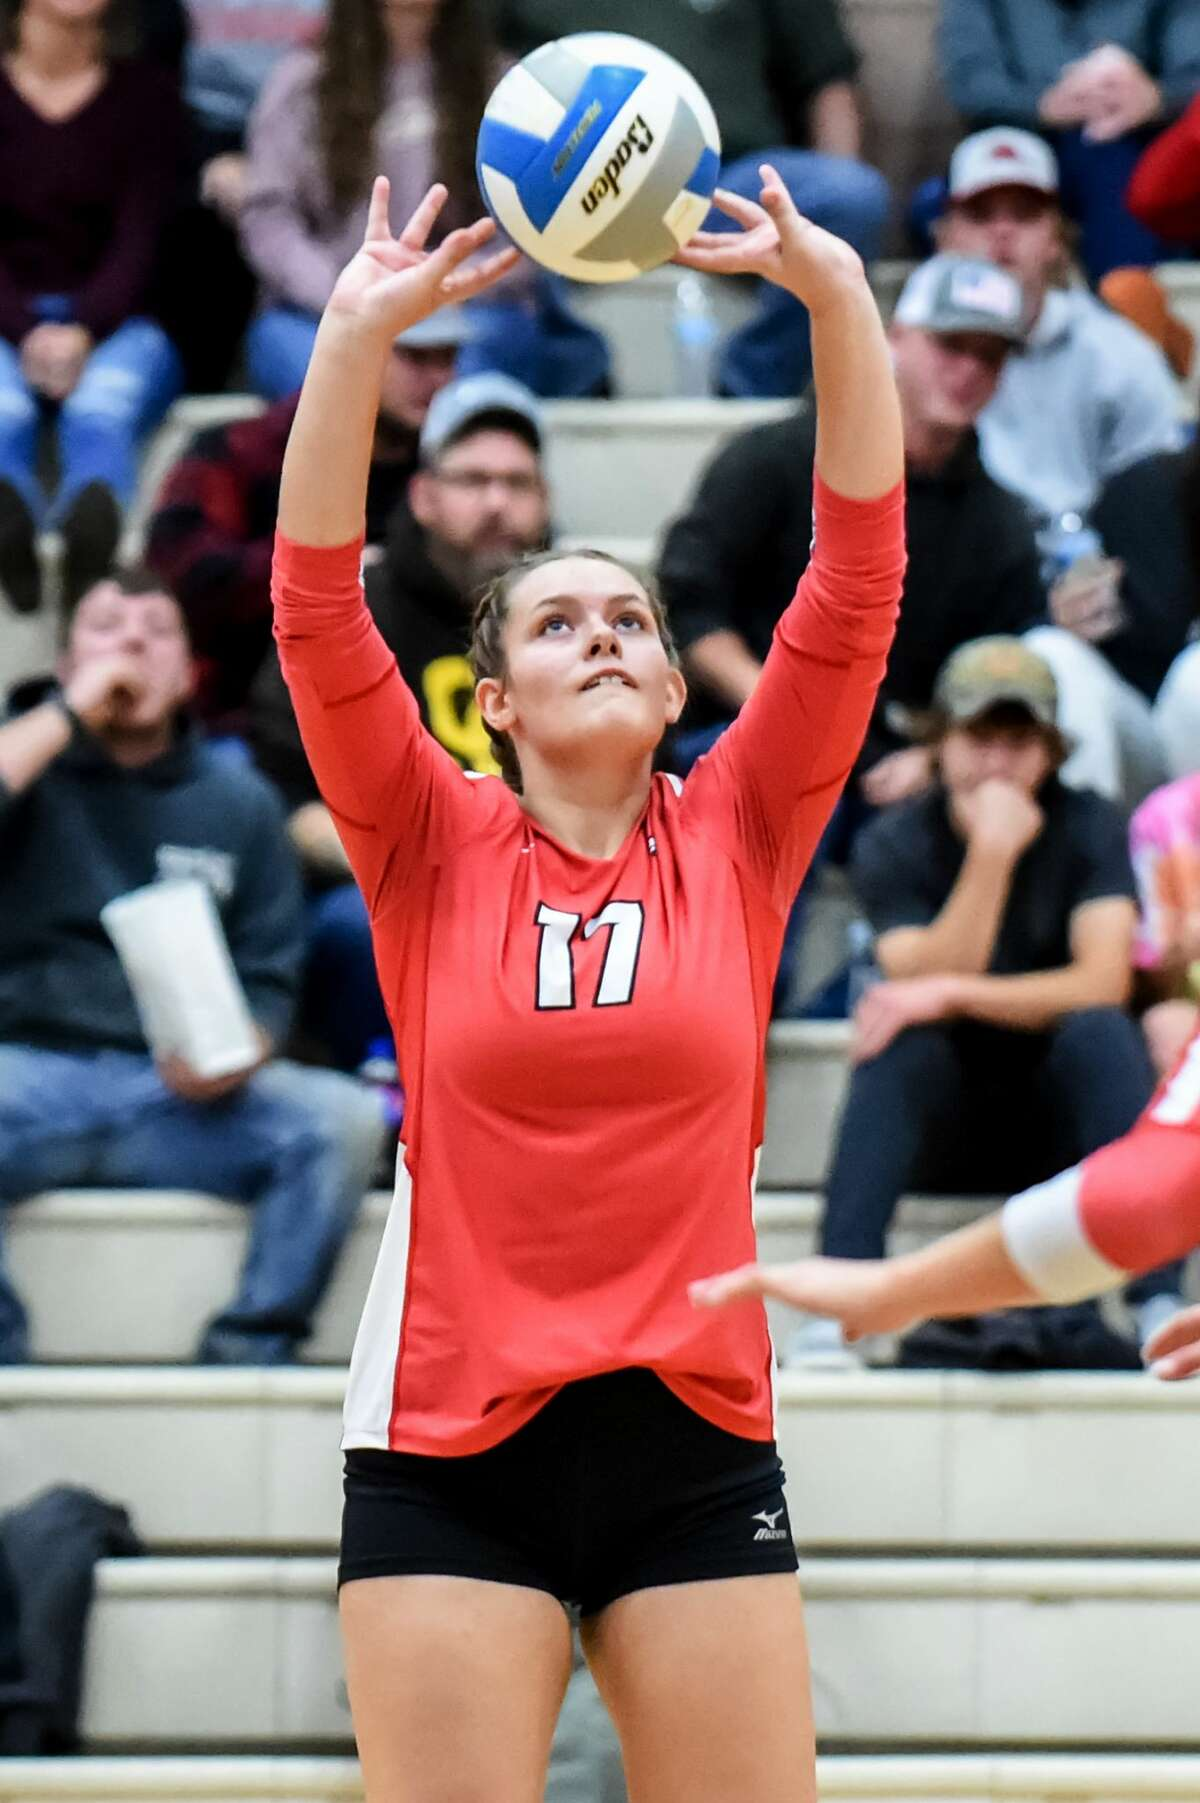 Beaverton's Kaelyn Fischer sets the ball during Wednesday's match against Clare, Sept. 22, 2021.